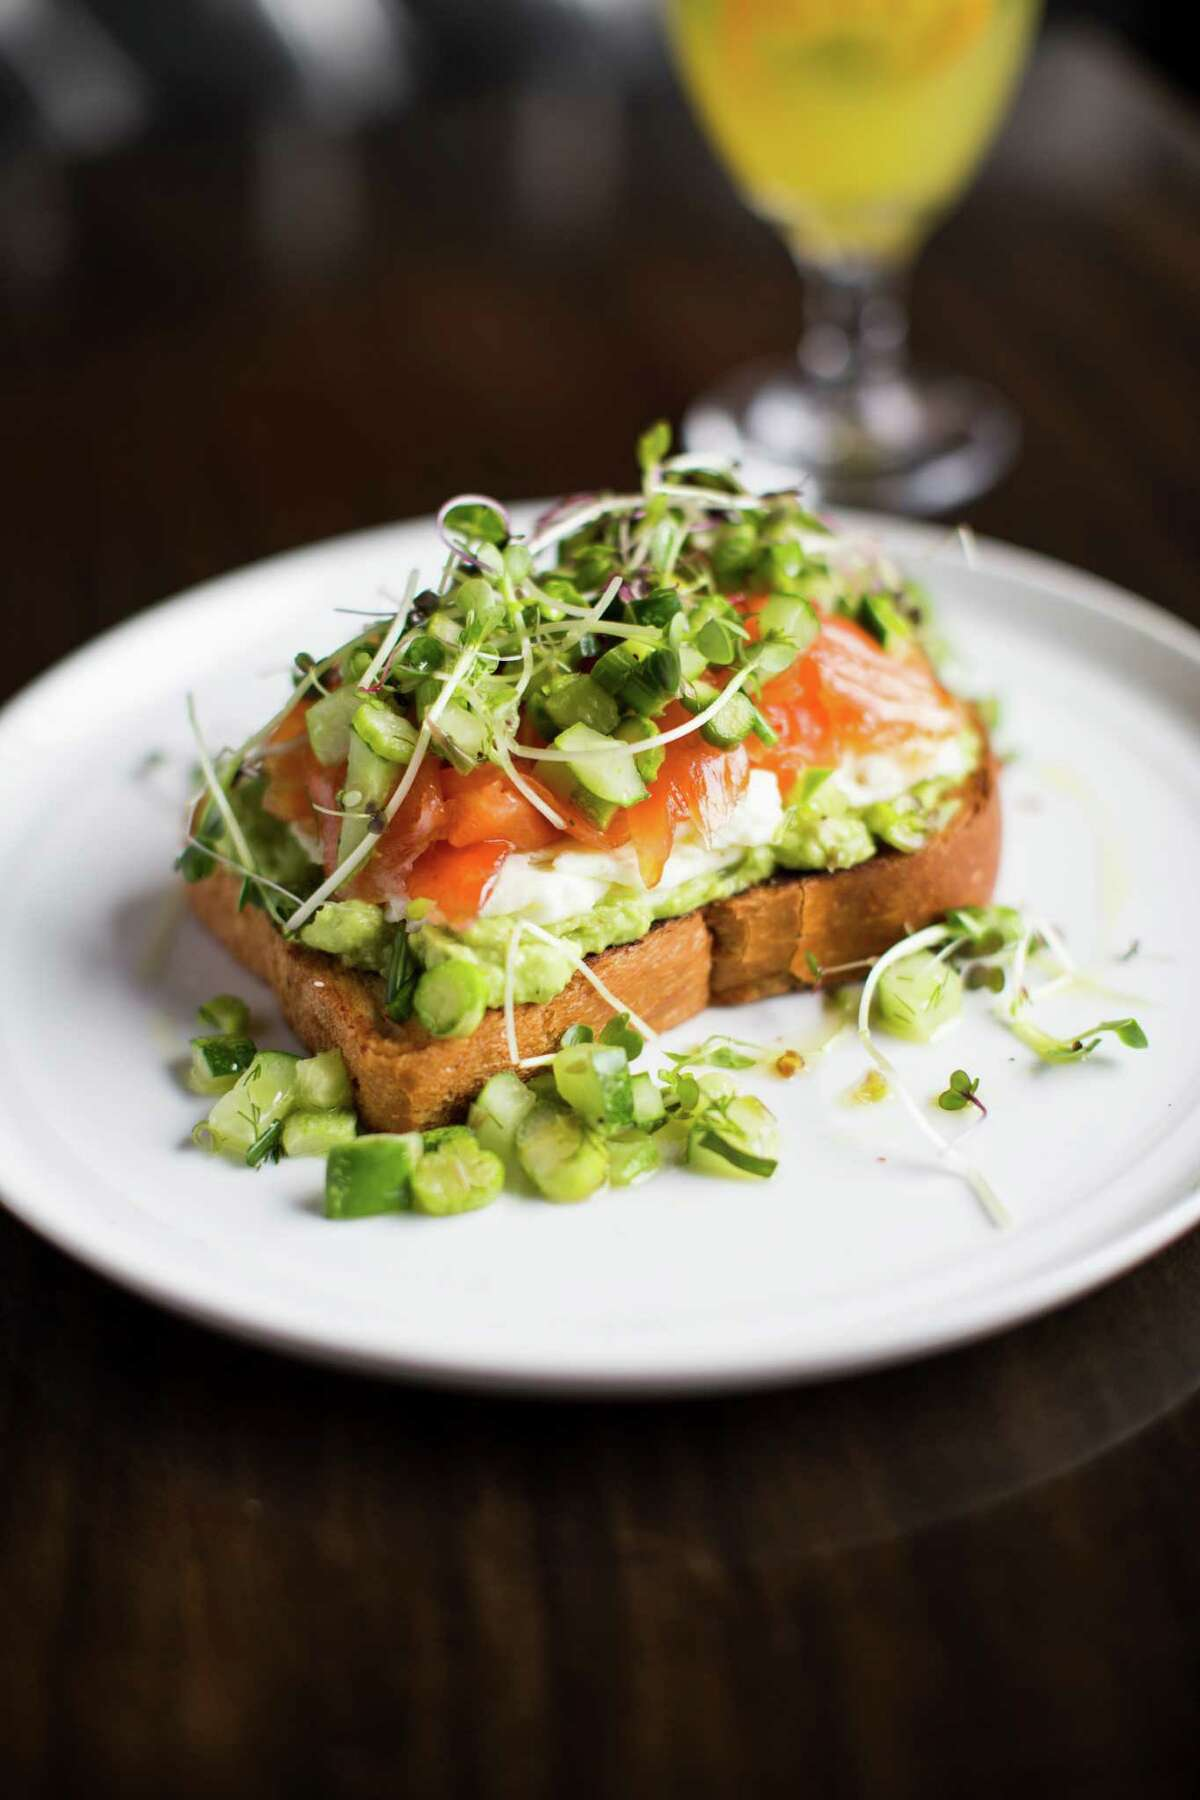 Smoked Salmon Toast as served at Benjy's in Rice Village.